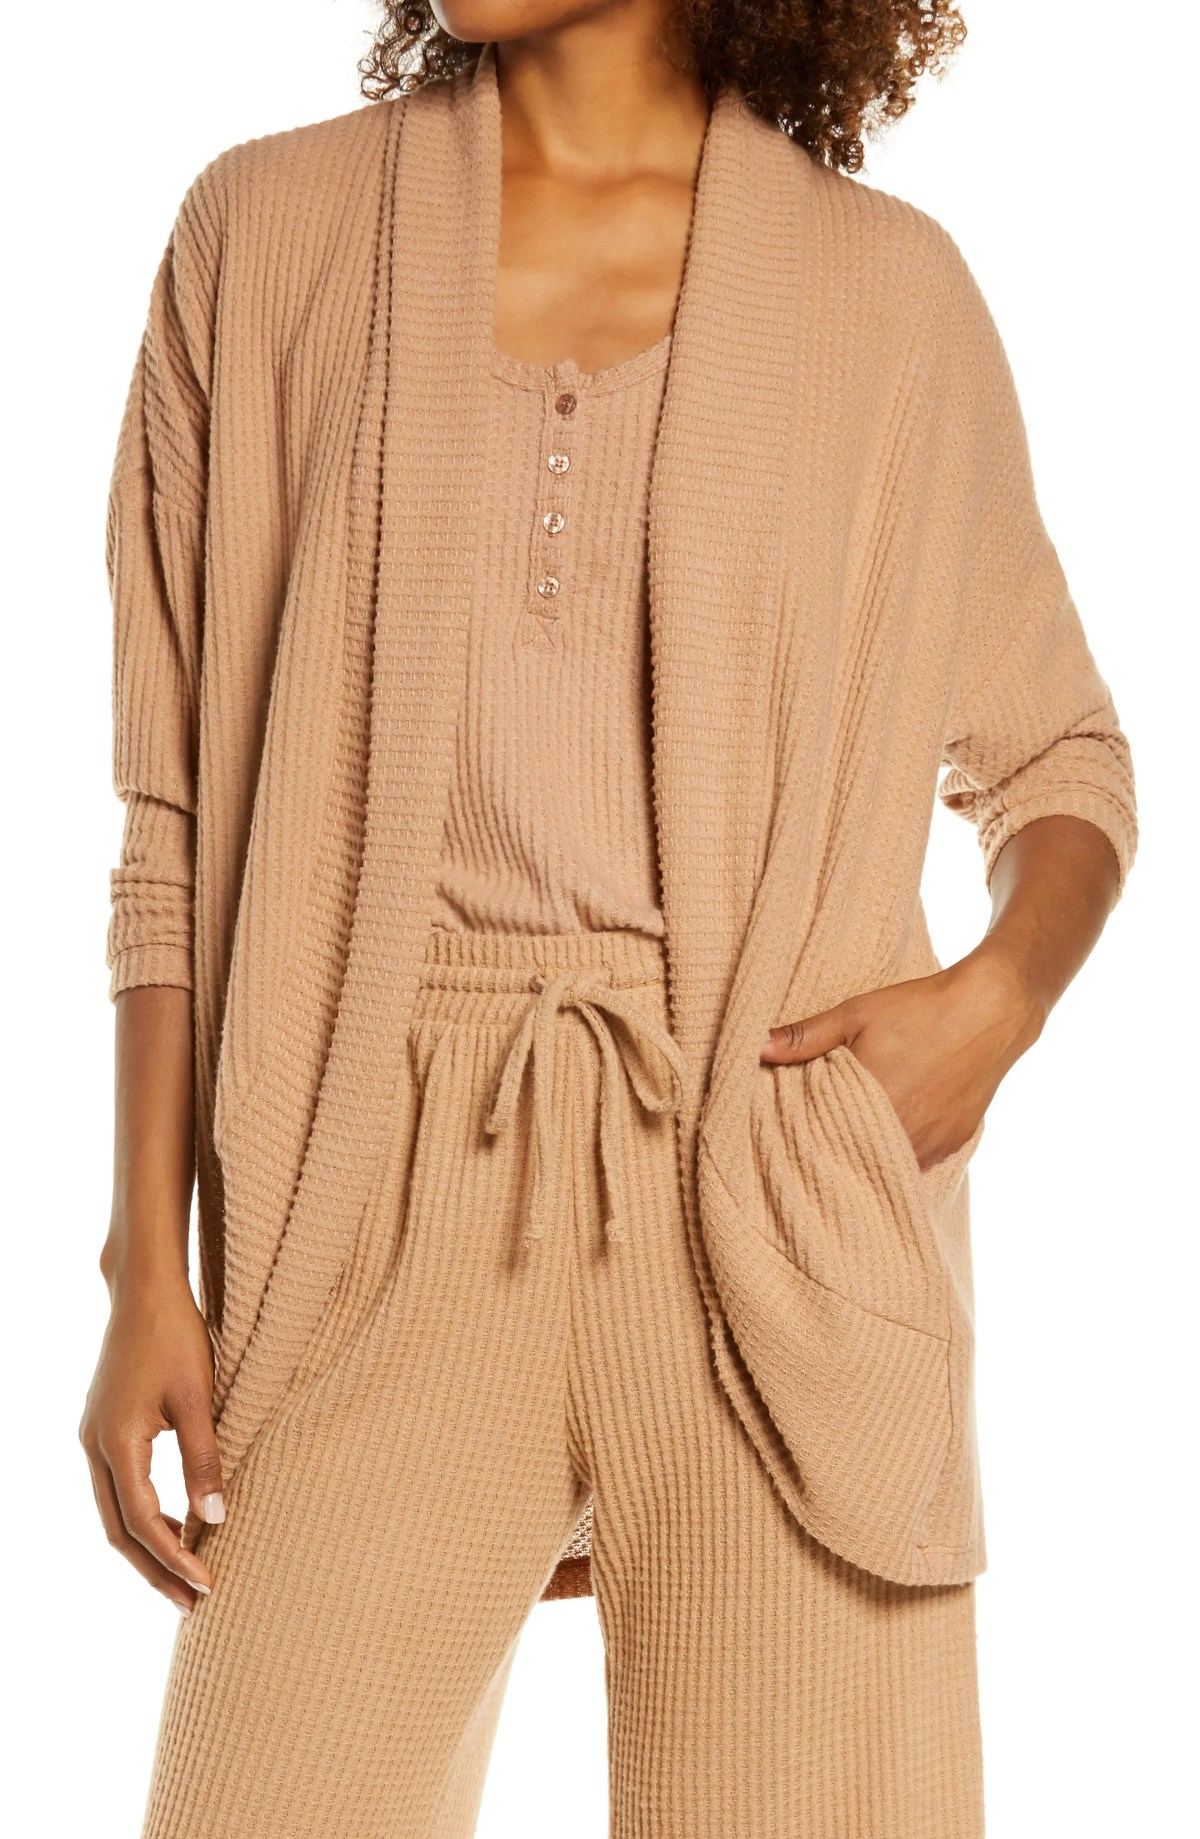 SOCIALITE Cocoon Waffle Knit Cardigan, Main, color, CAMEL